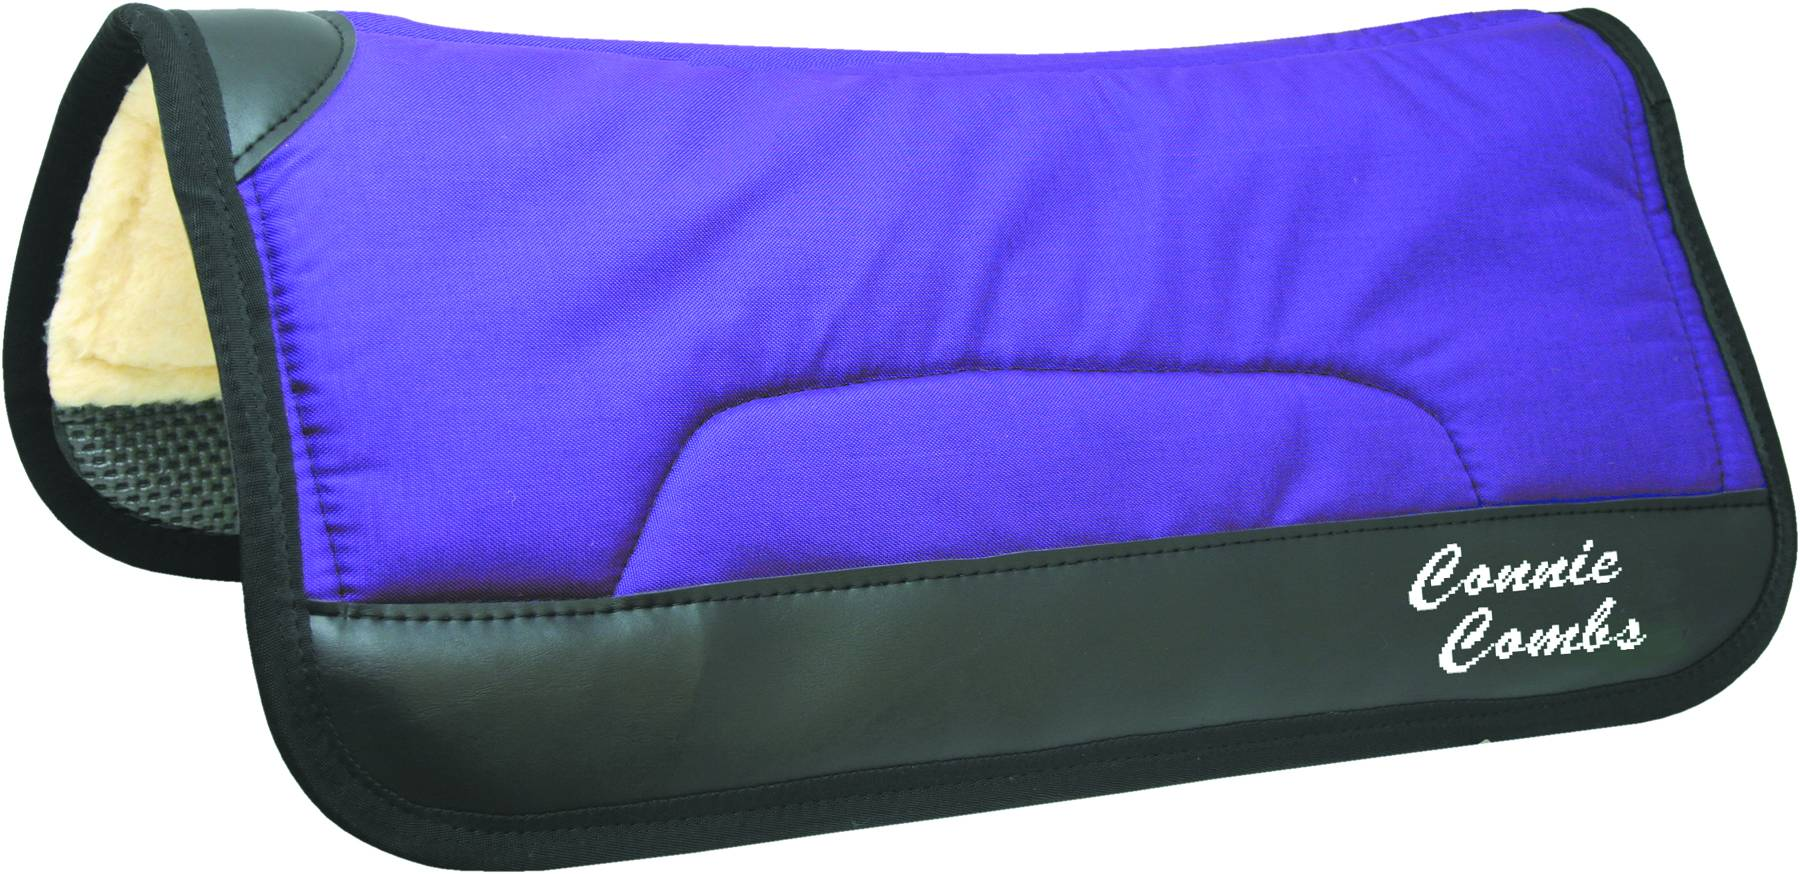 ABETTA Connie Combs Contour Pad